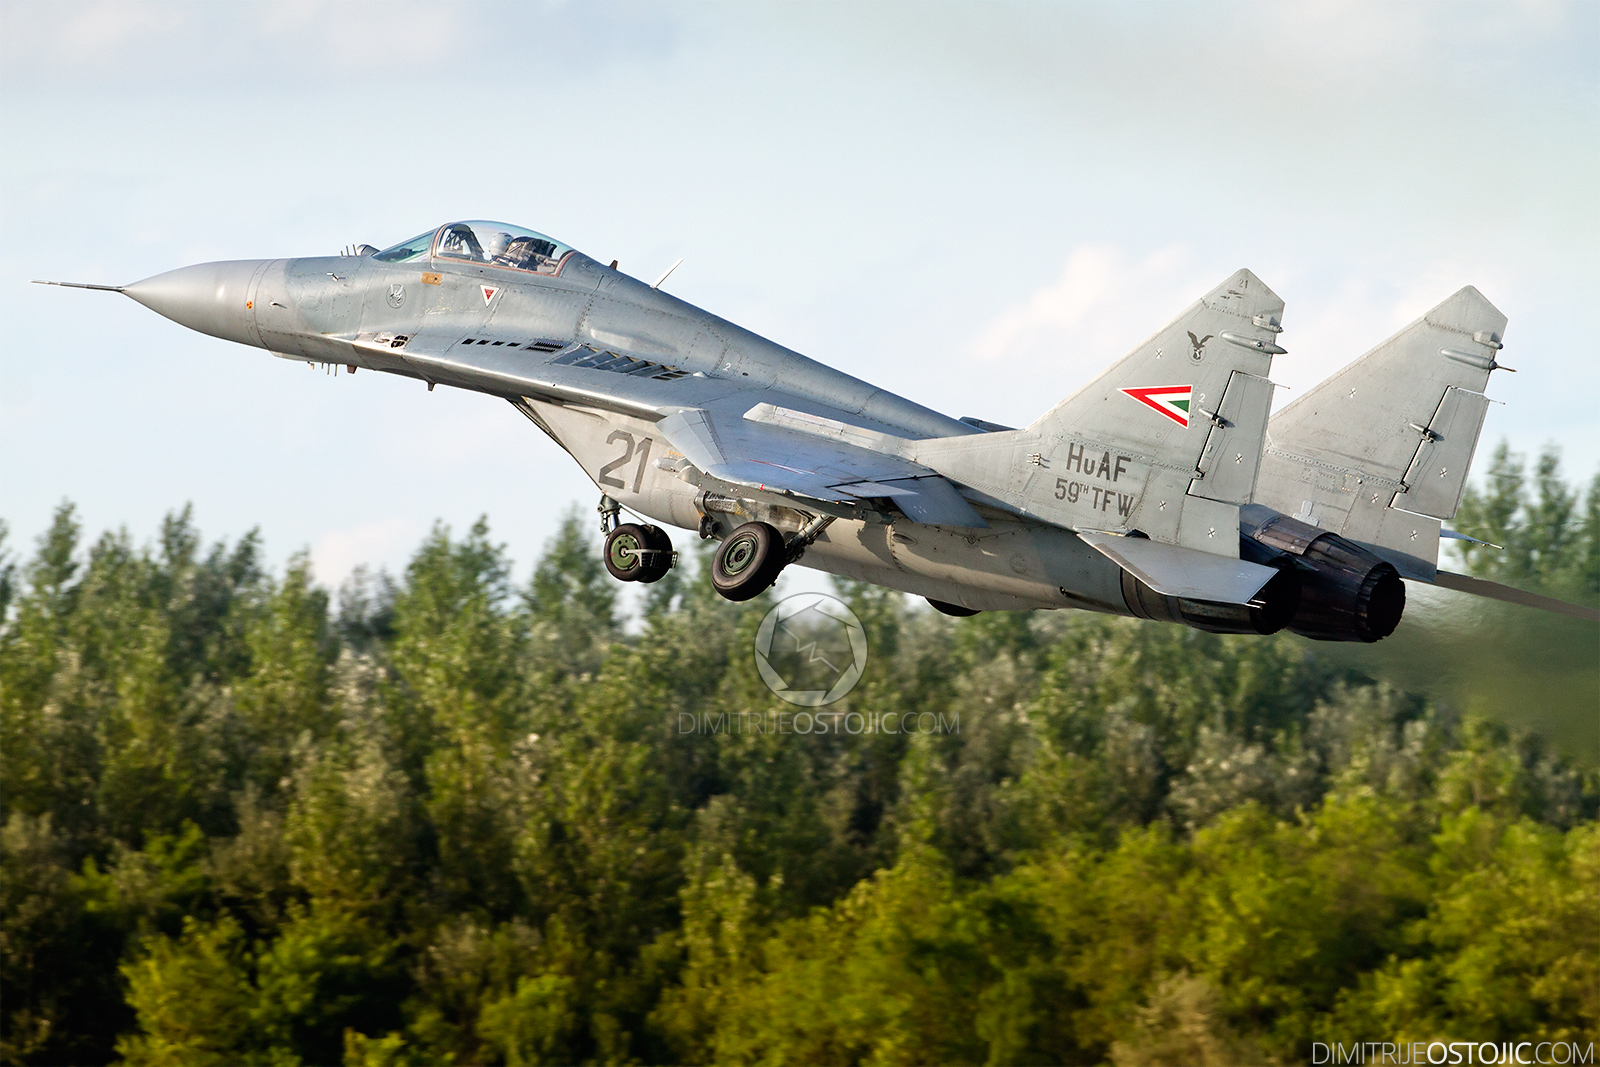 MiG-29 no21 Fulcrum Hungary Air Force - photo: Dimitrije Ostojic / www.dimitrijeostojic.com